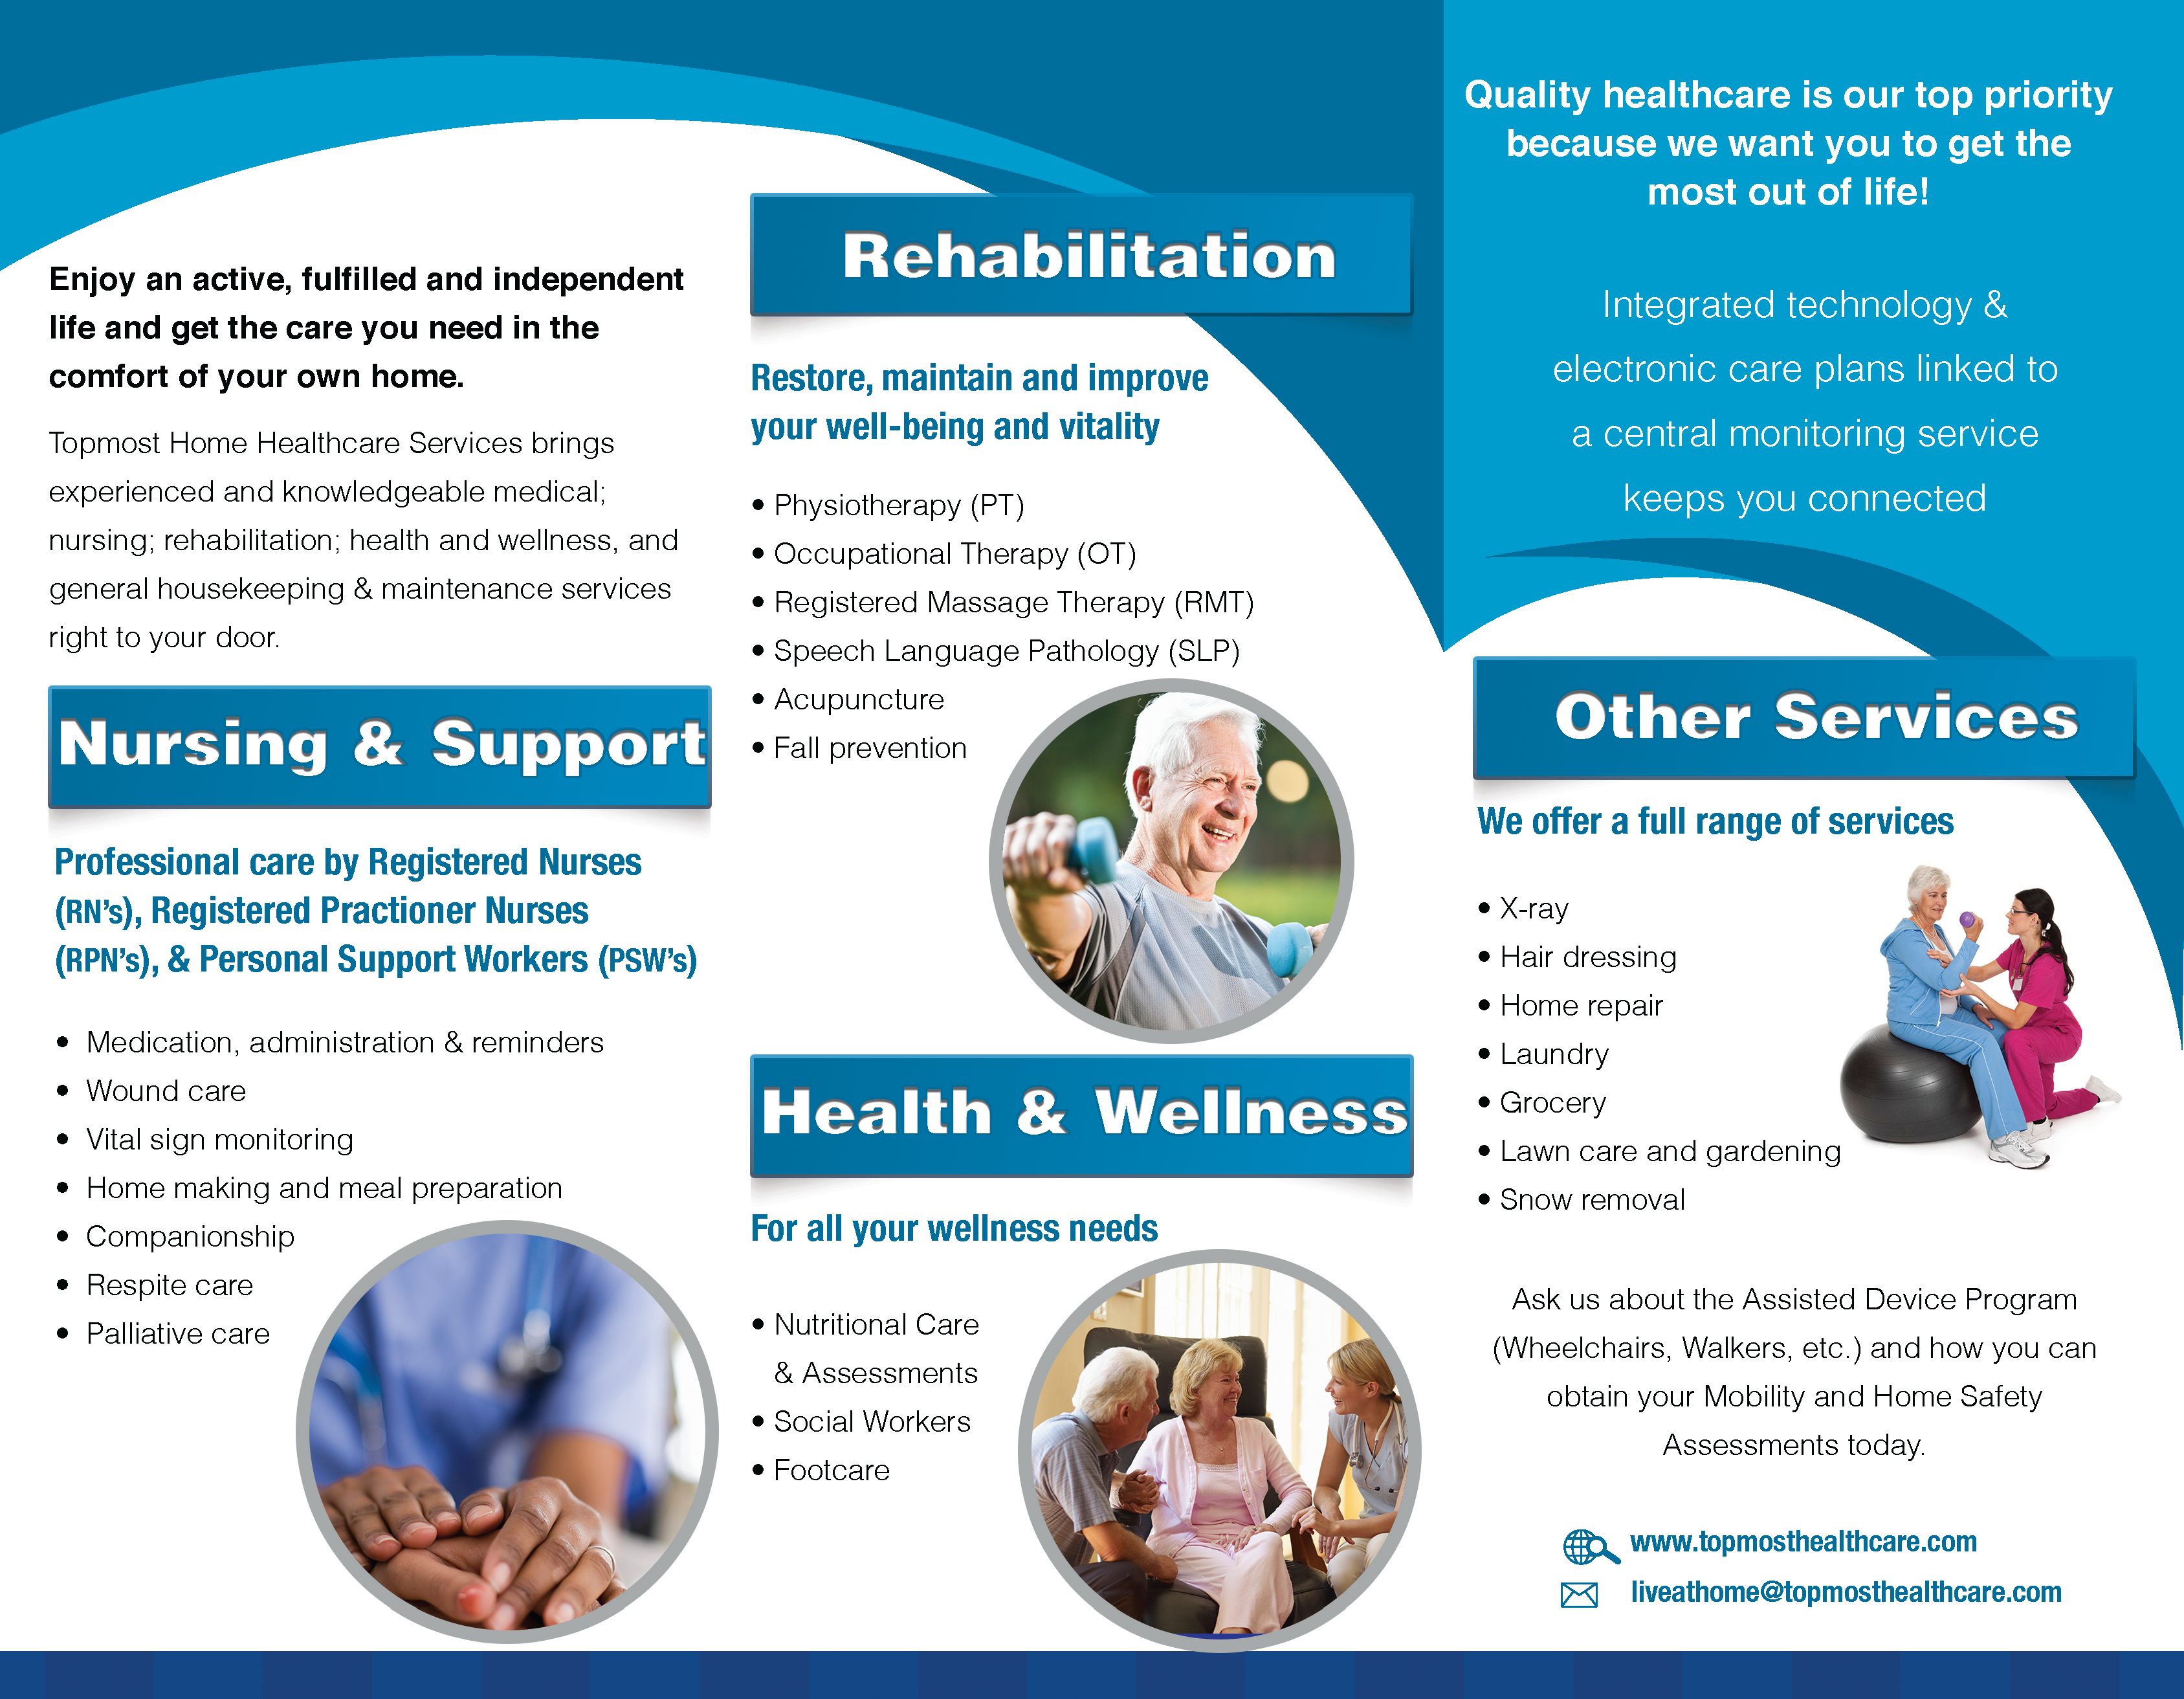 Our client, Topmost Home Healthcare Services asked us to